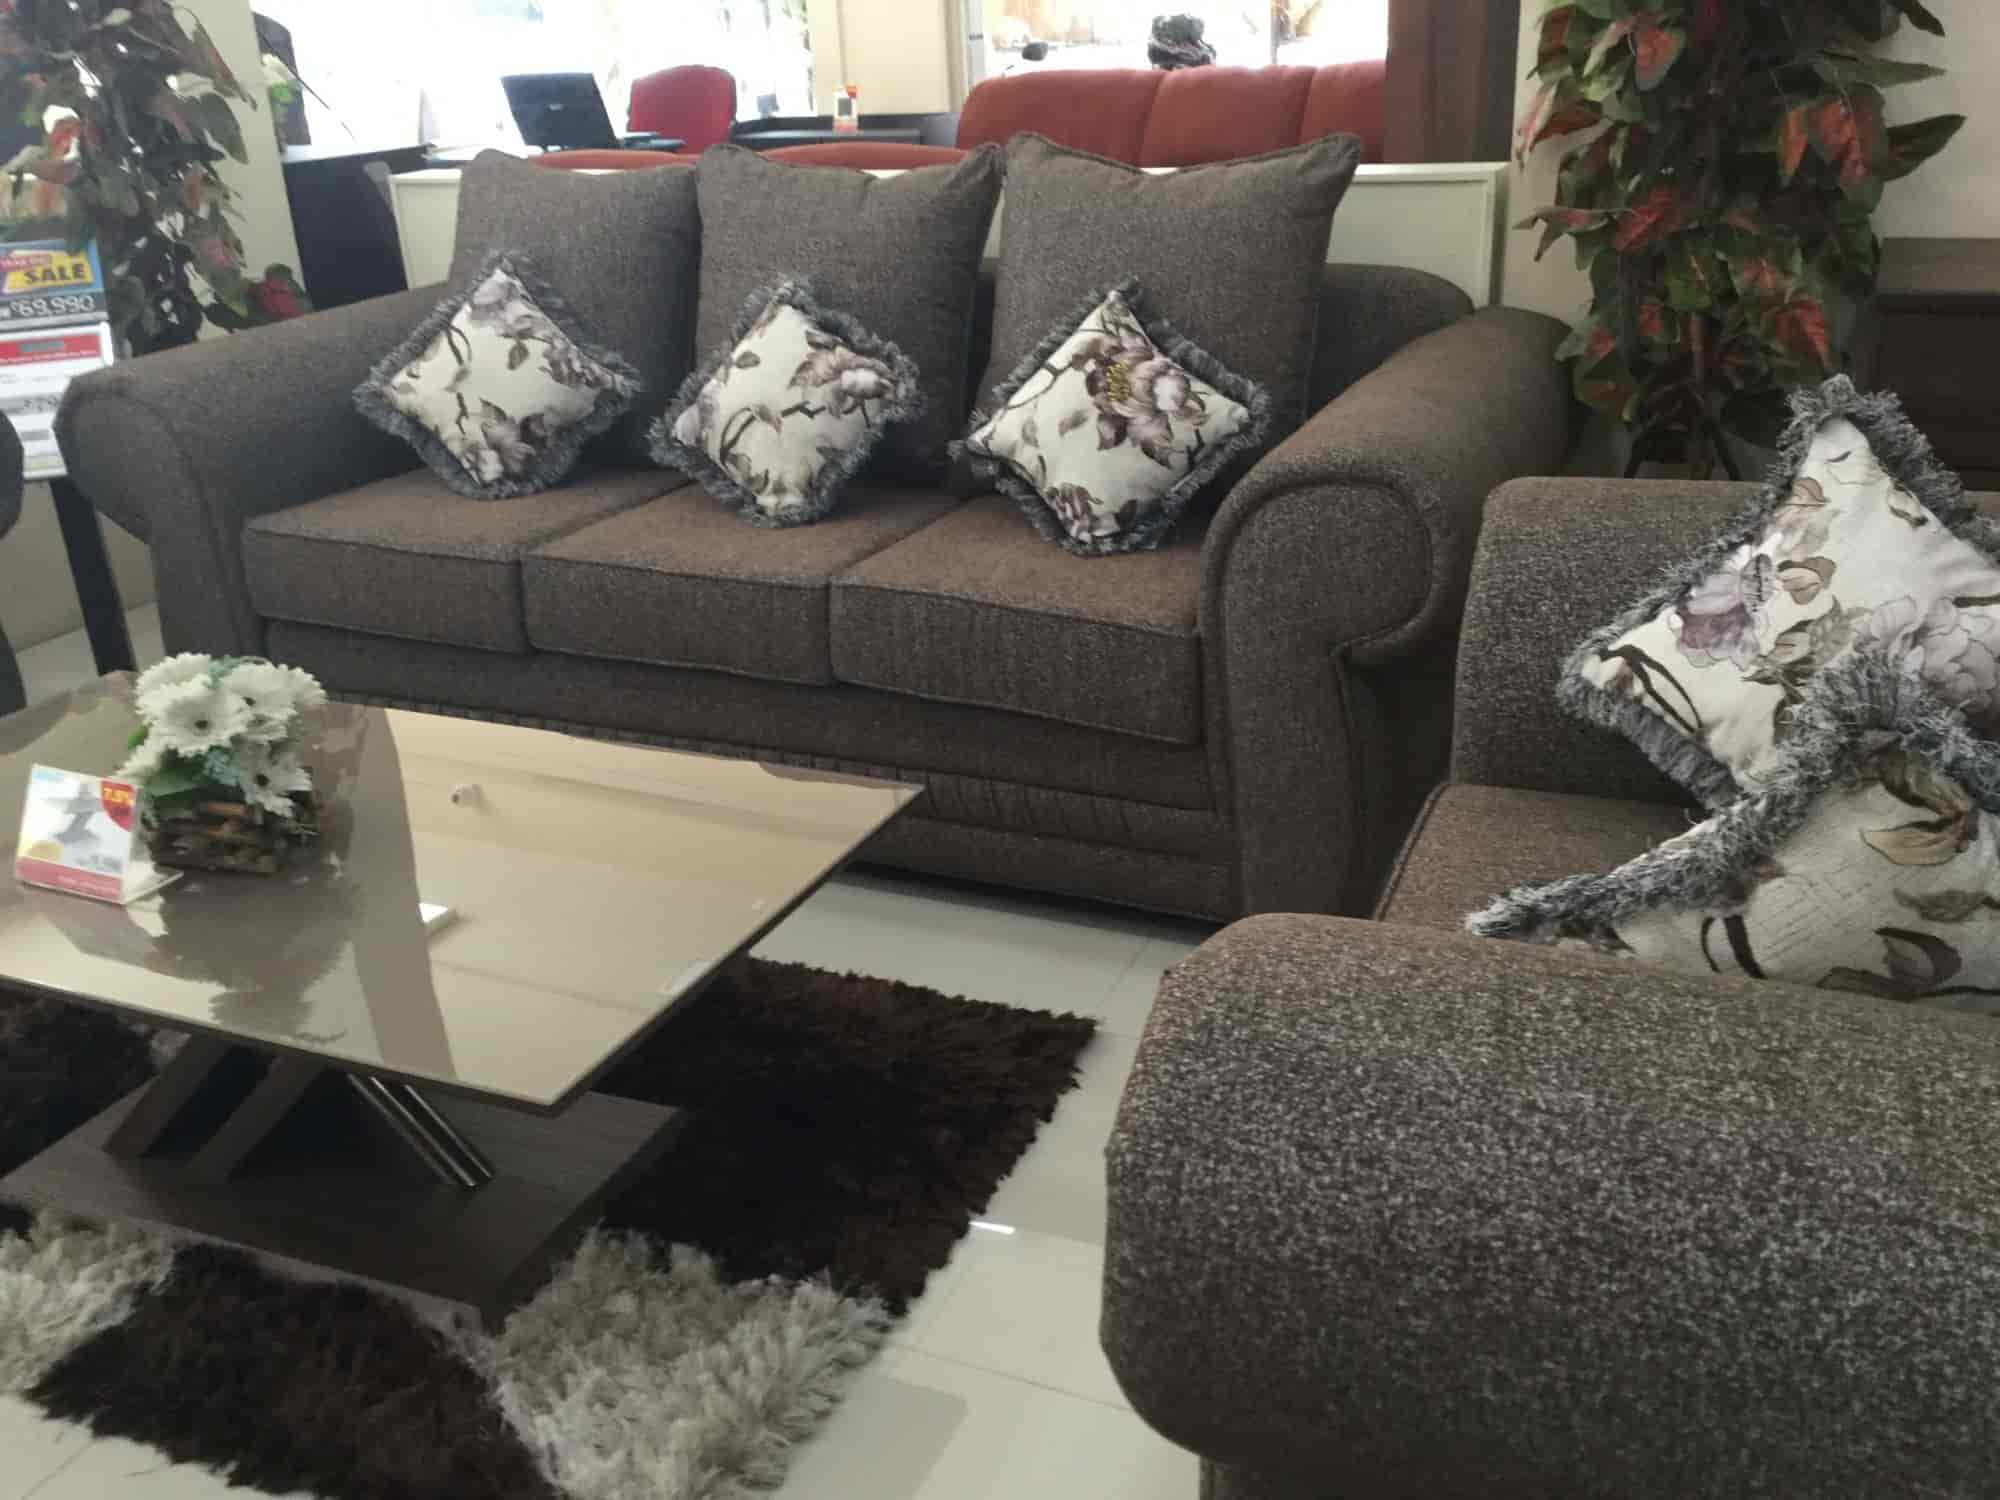 Sofa Set Images Kerala Damro Furniture Pvt Ltd Edapally Furniture Dealers Damro In